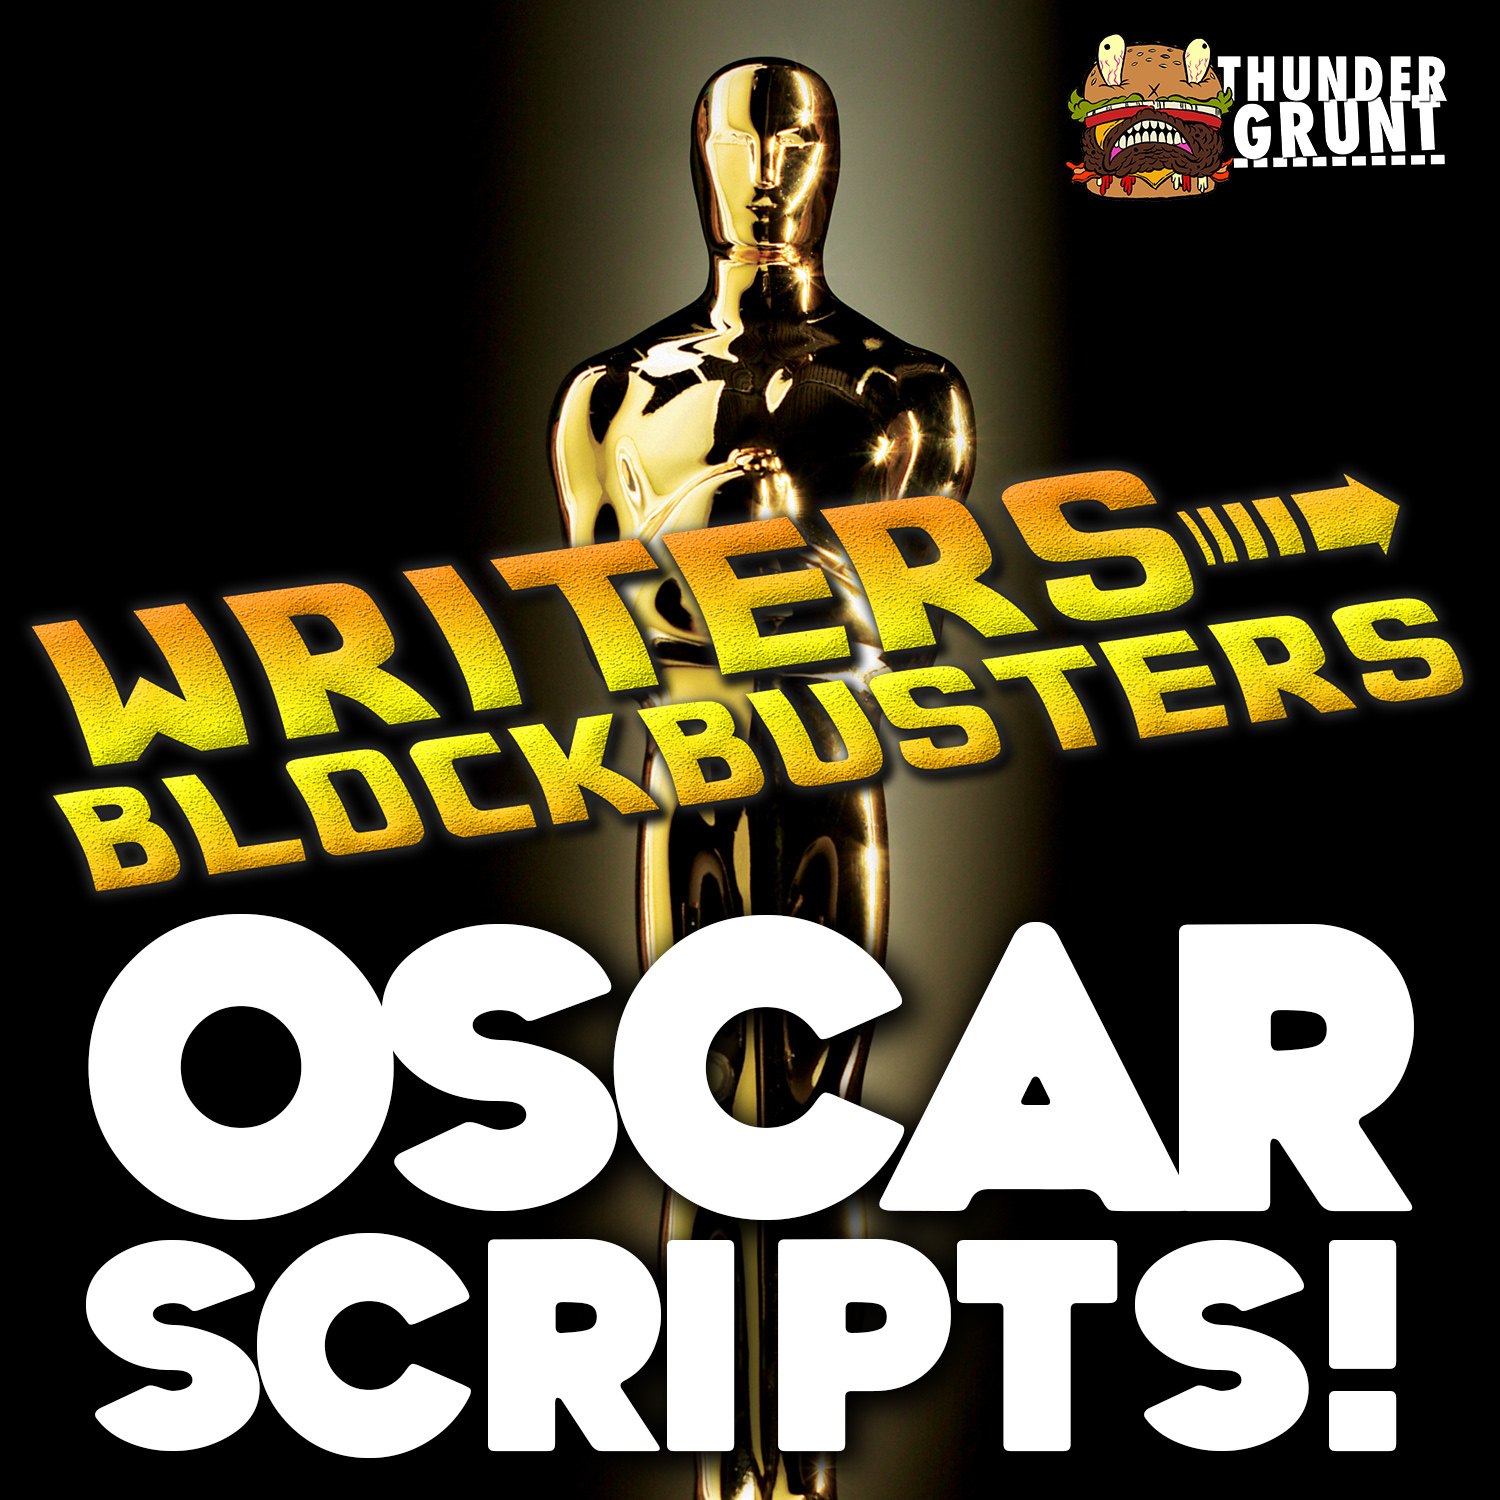 WRITERS/BLOCKBUSTERS 027 | OSCAR SCRIPTS!